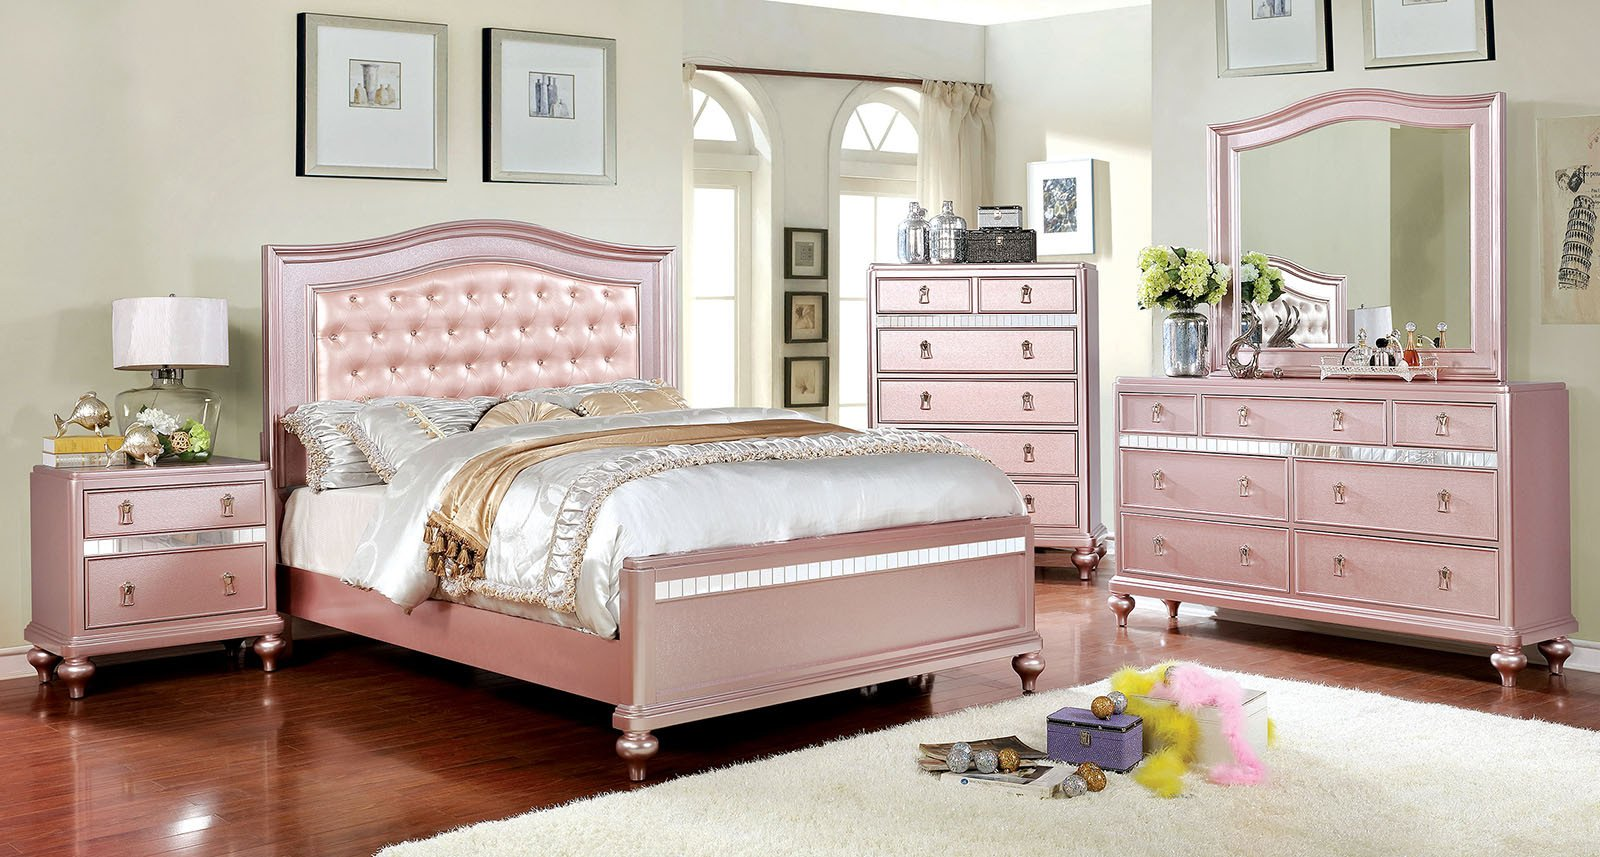 King Size Bedroom Set with Mattress Luxury Ariston Rose Gold Finish Cal King Size Bed with Mirrored Trim Jeweled button Tufted Padded Leather Headboard